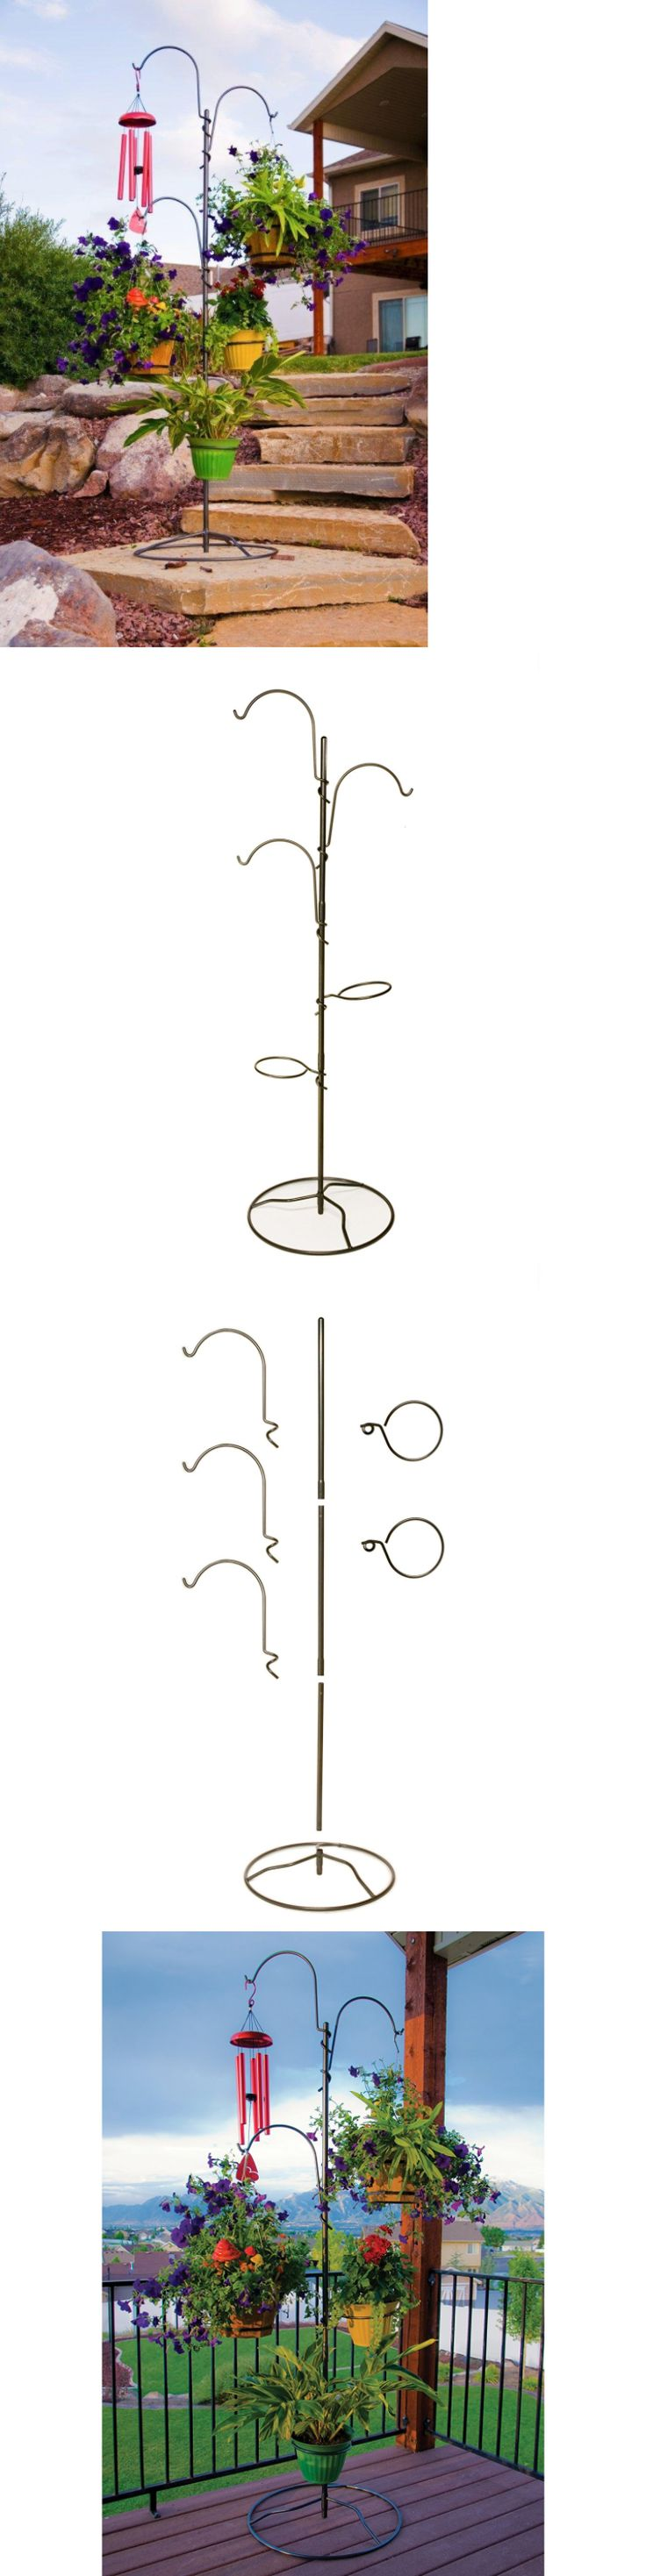 Plant Hooks and Hangers 134671: Plant Hanger Rack Indoor Stand Shepard Hooks Outdoor Unique Wind Chimes Patio -> BUY IT NOW ONLY: $50.98 on eBay!